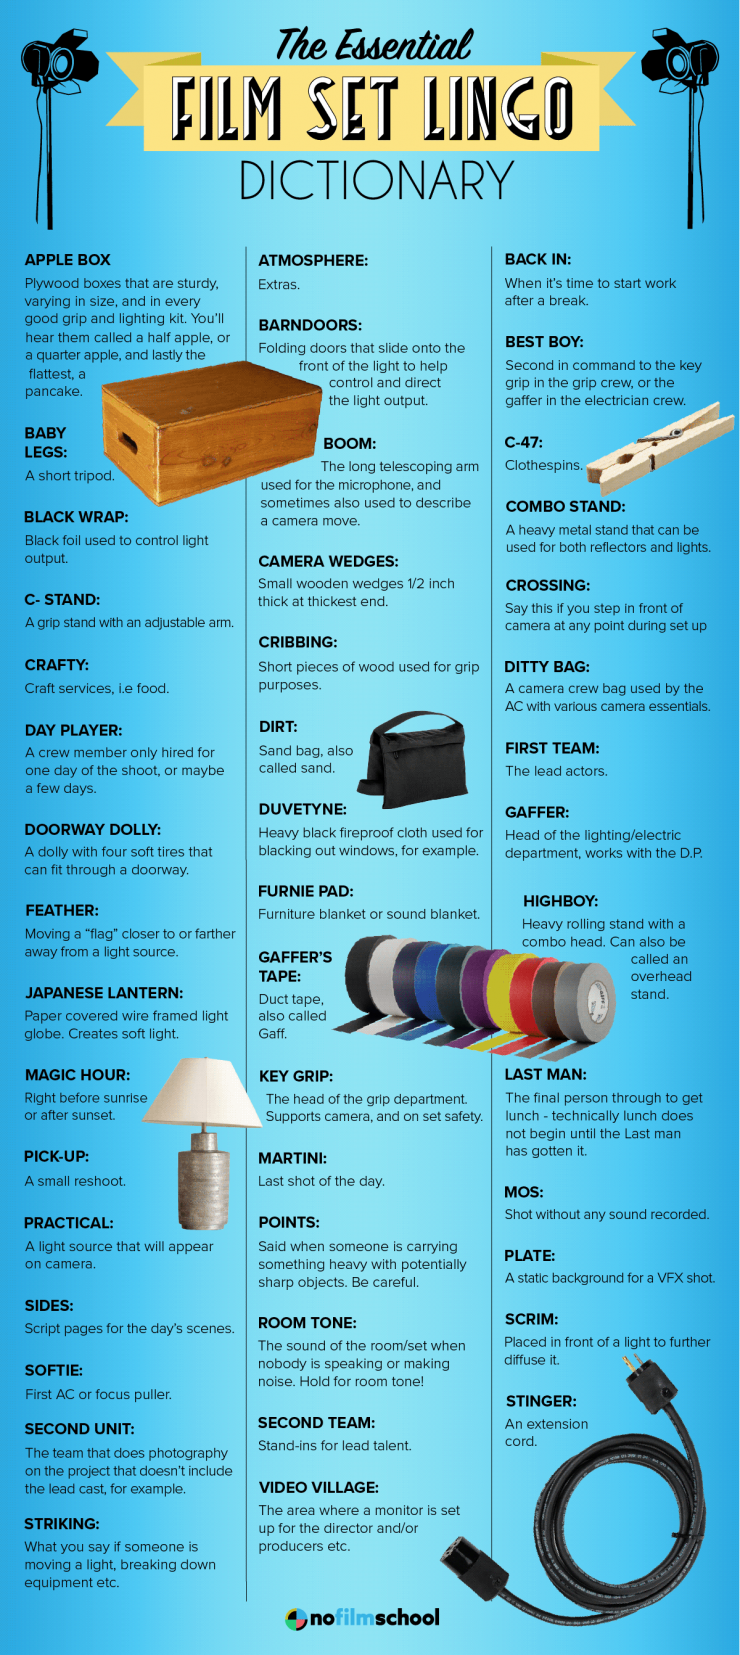 Film Set Lingo Filmmaking Lingo Dictionary